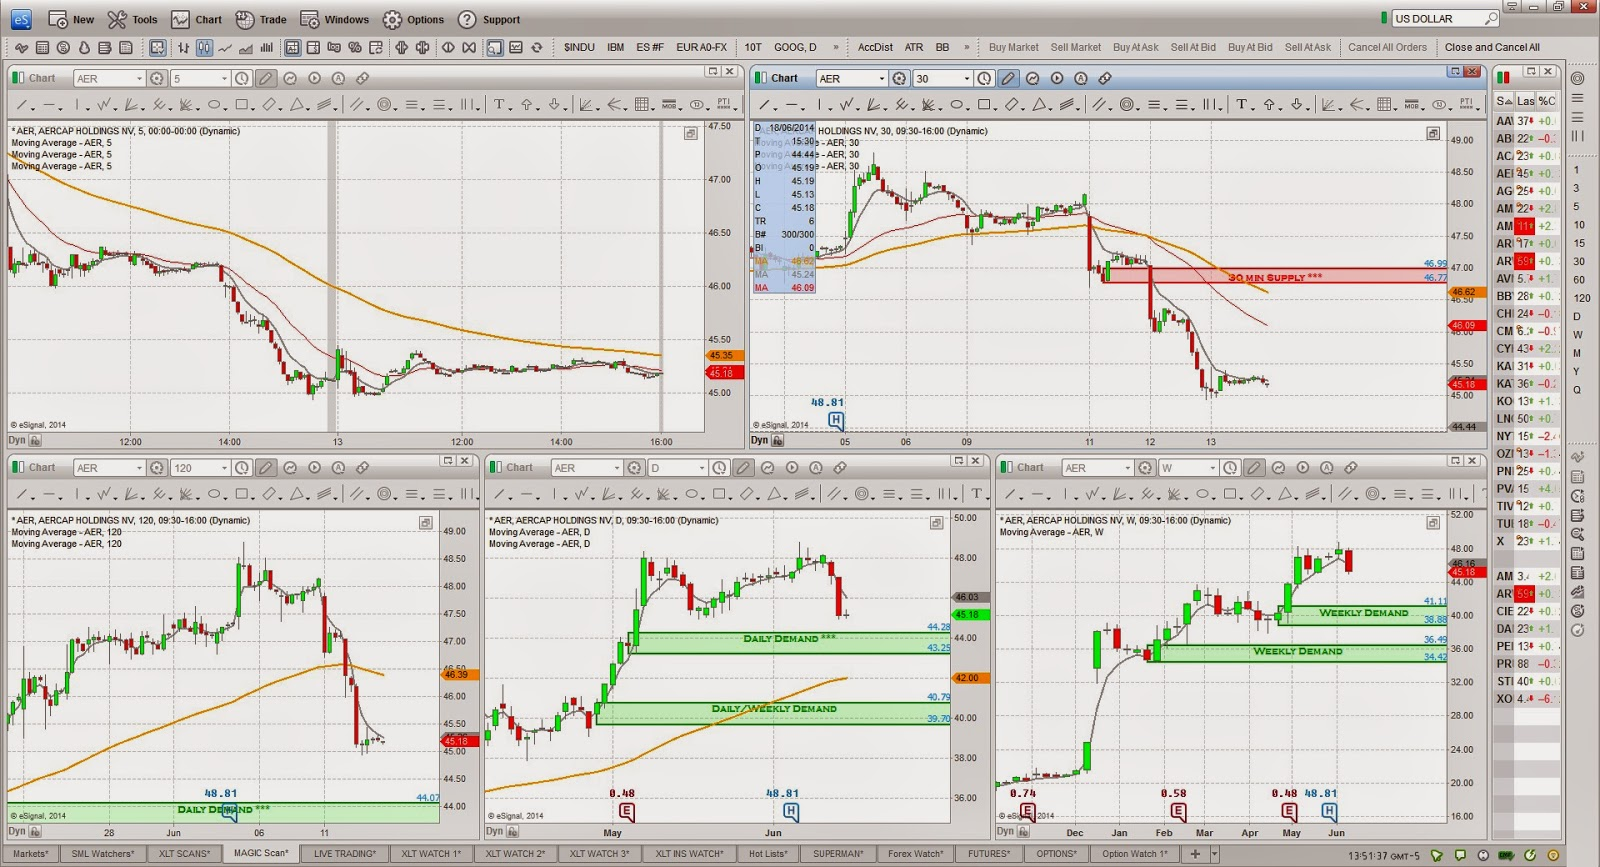 Blogs on options trading 5 min